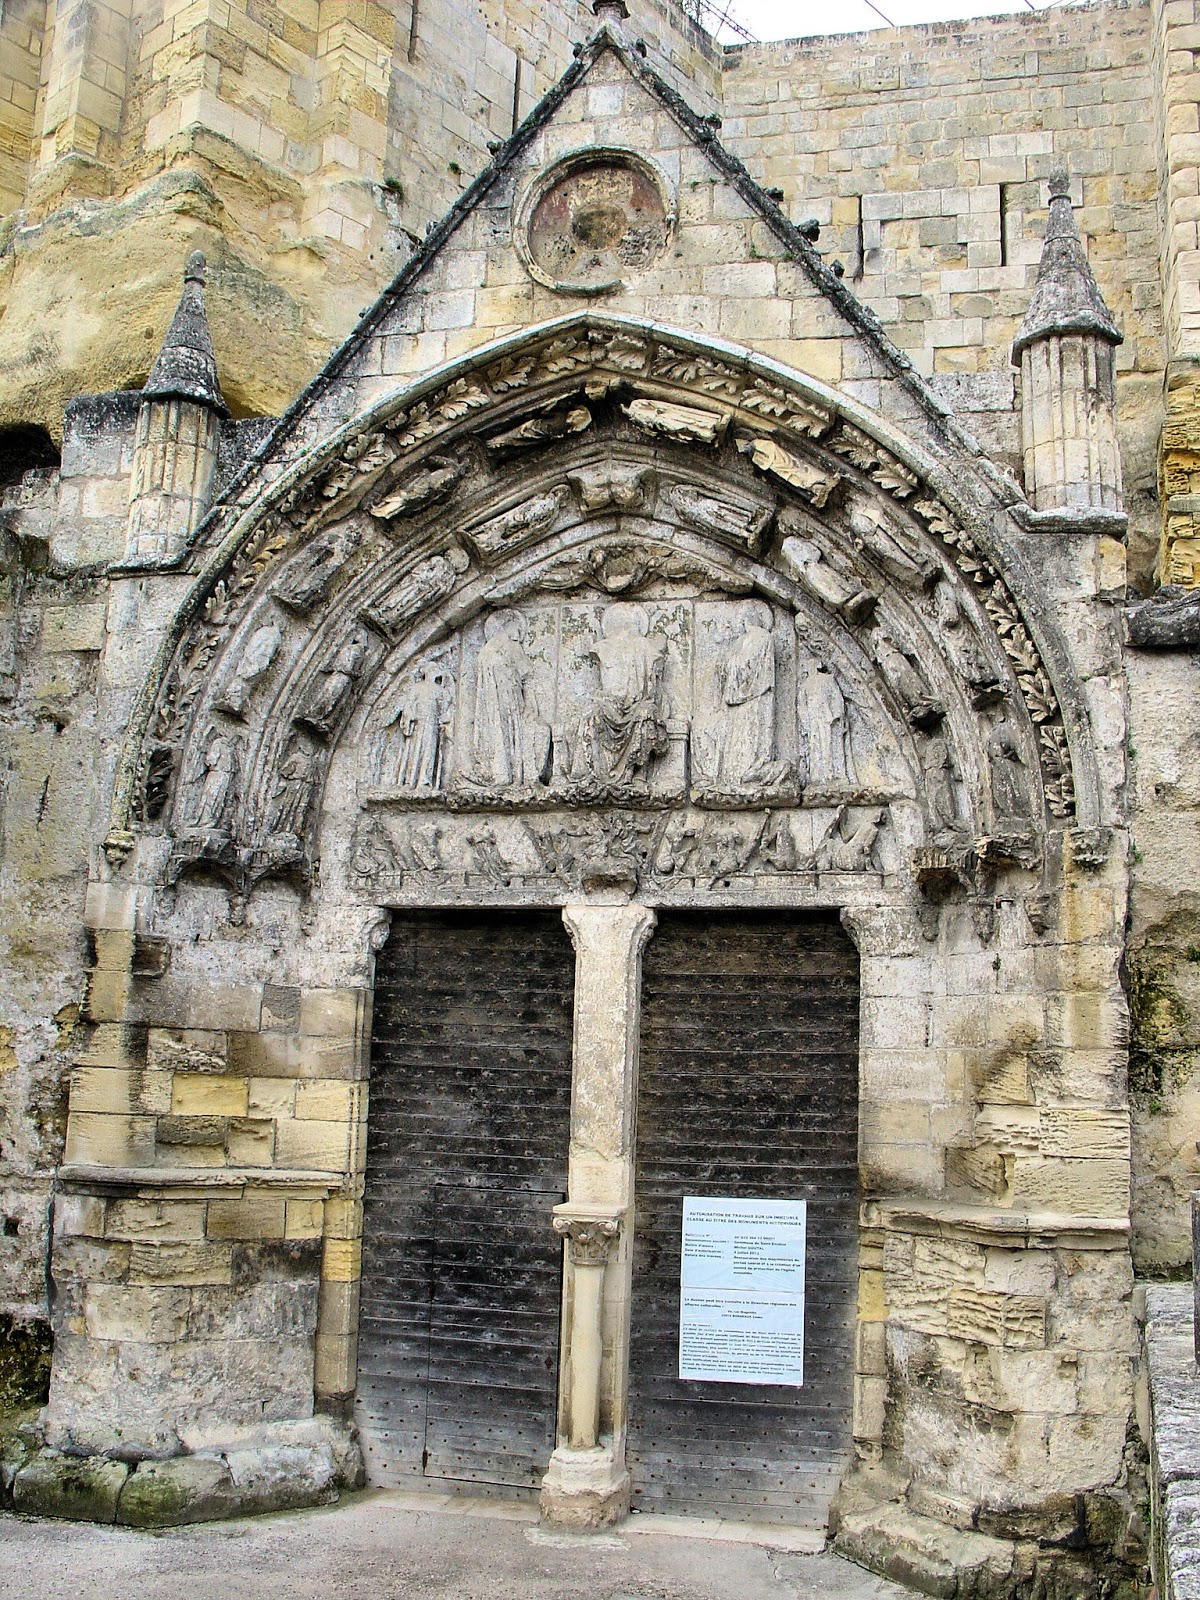 Close-up view of the Monolithic Church's portal.